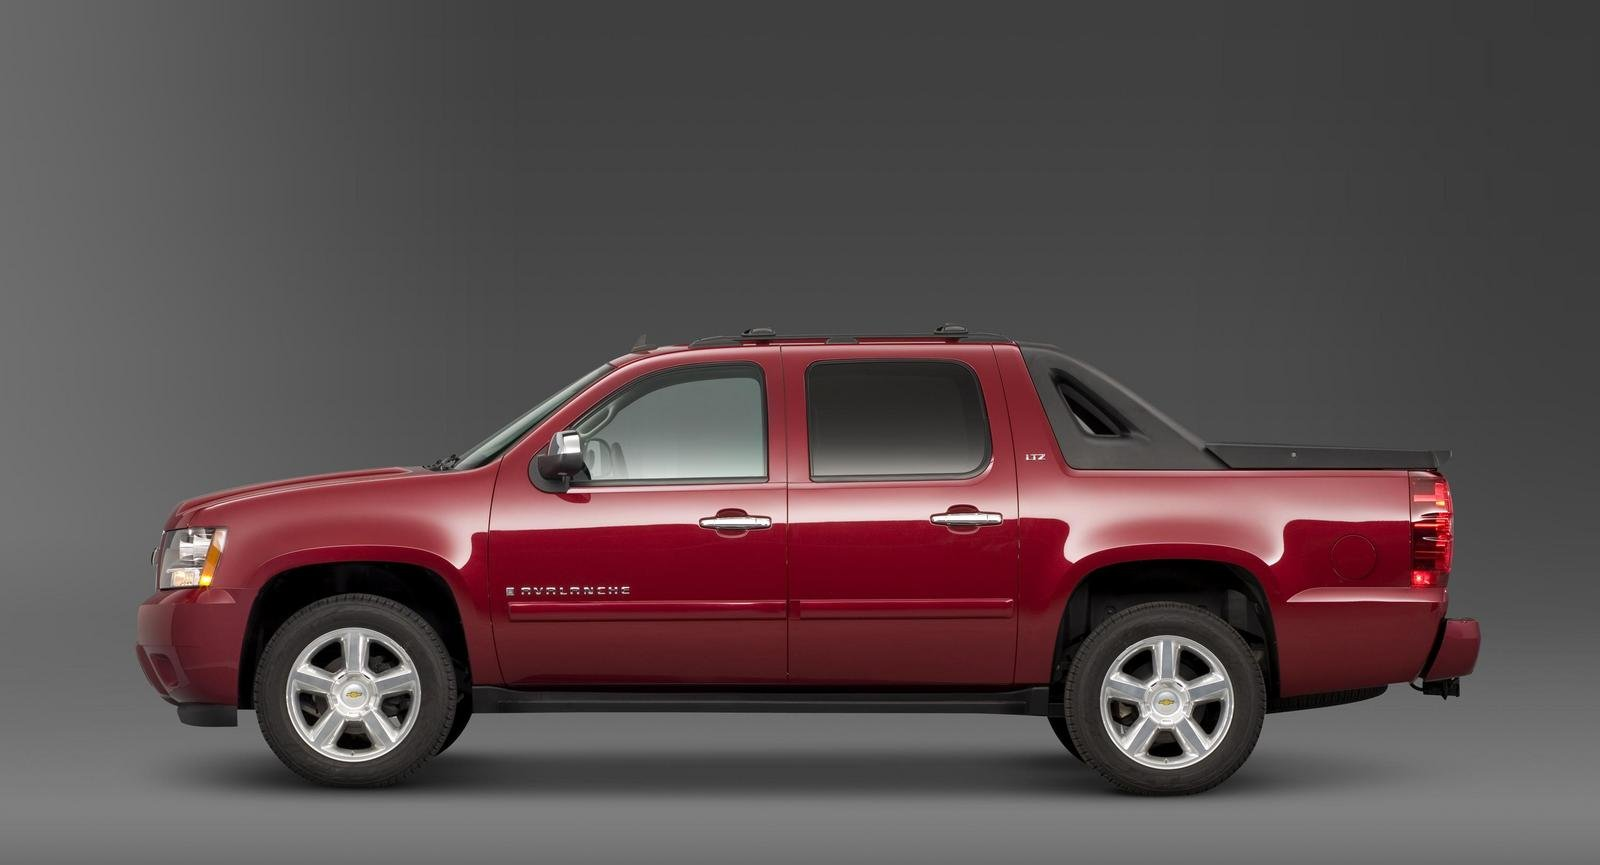 2008 chevrolet avalanche picture 190258 car review. Black Bedroom Furniture Sets. Home Design Ideas